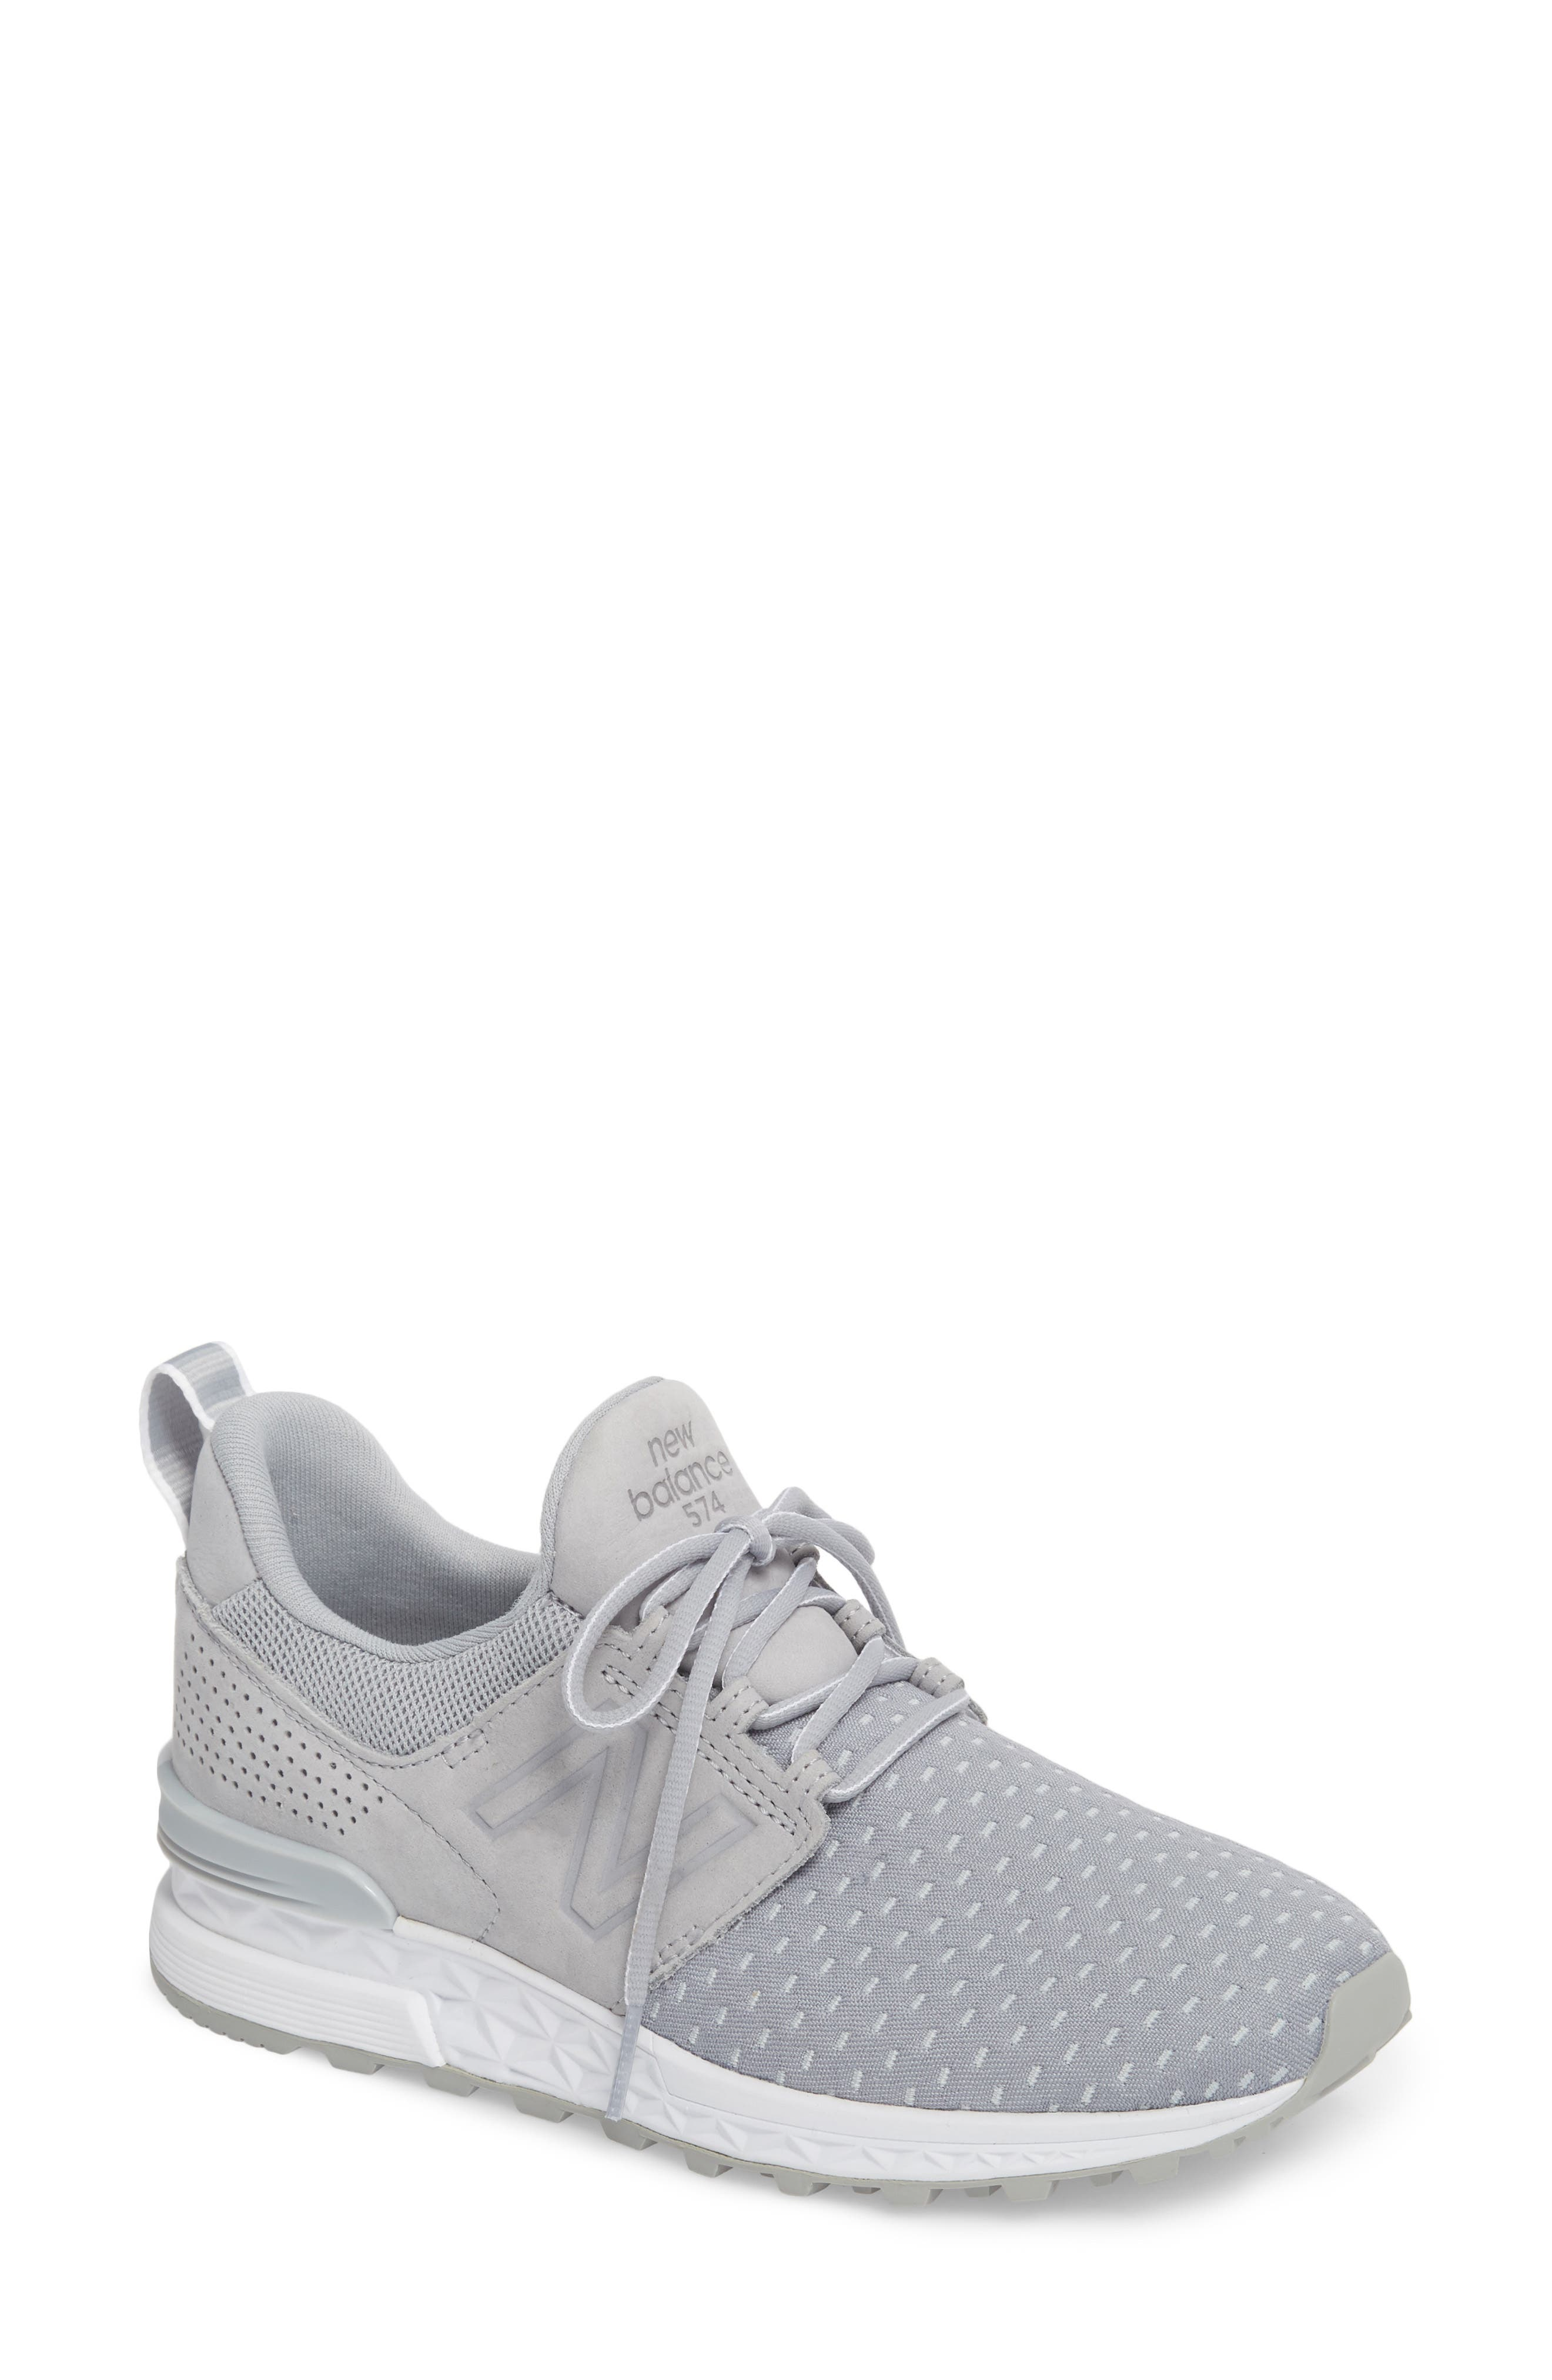 574 Sport Decon Fresh Foam Sneaker,                         Main,                         color, Silver Mink